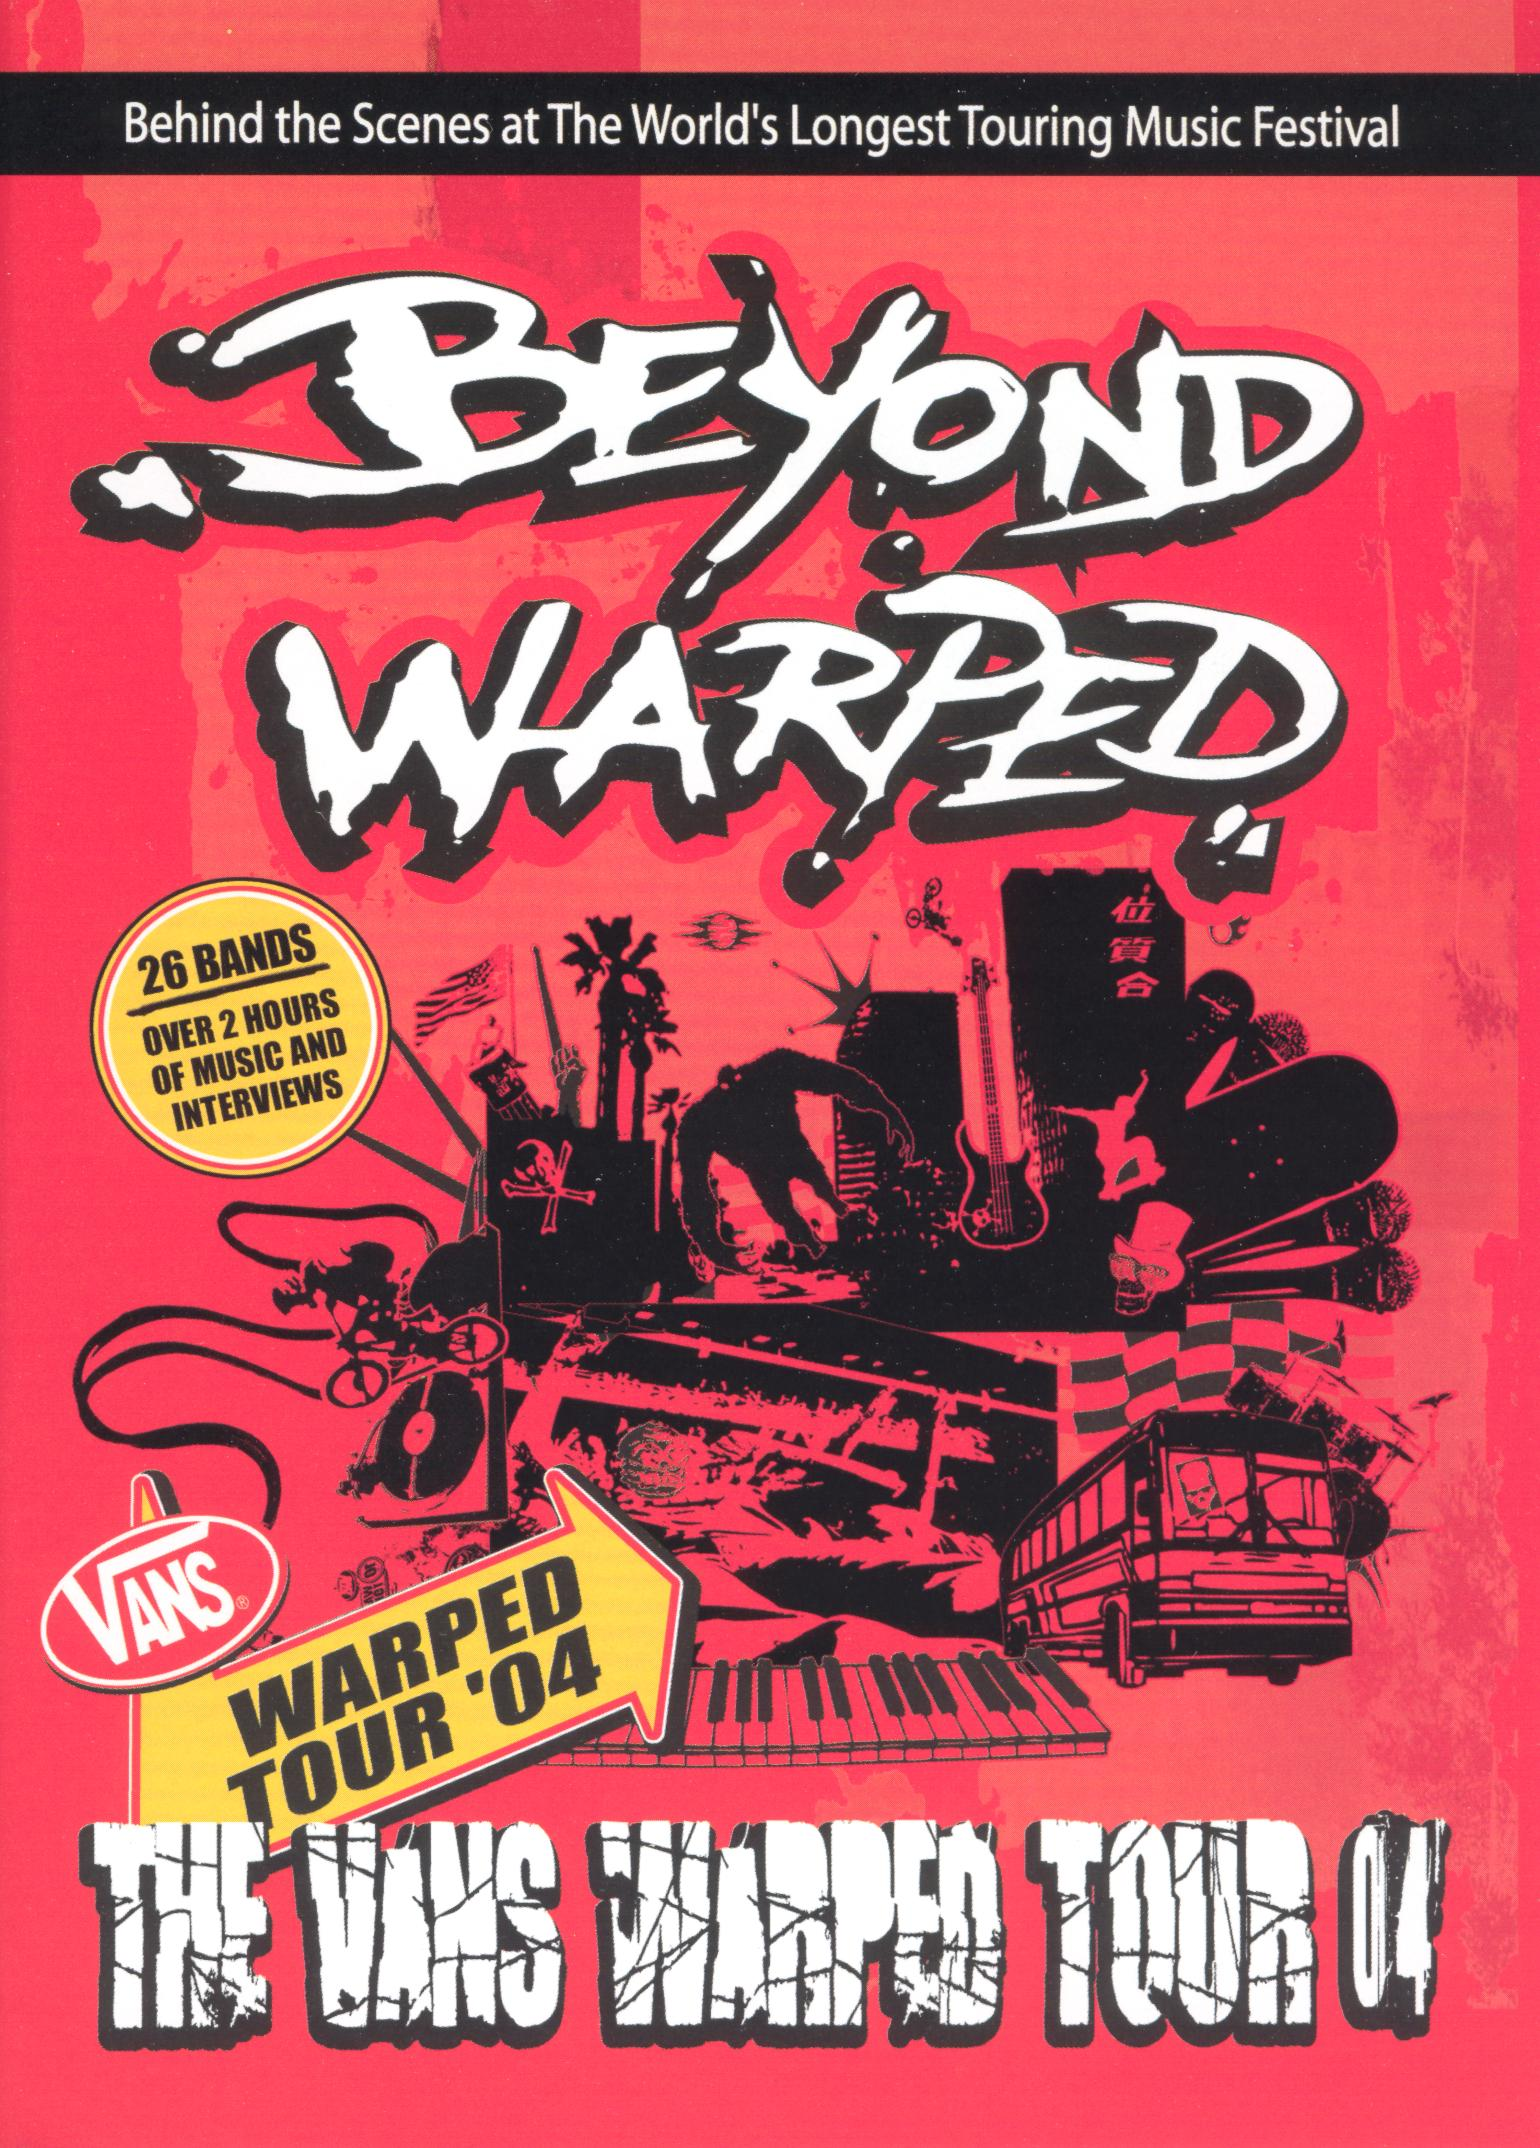 Beyond Warped: The Vans Warped Tour '04